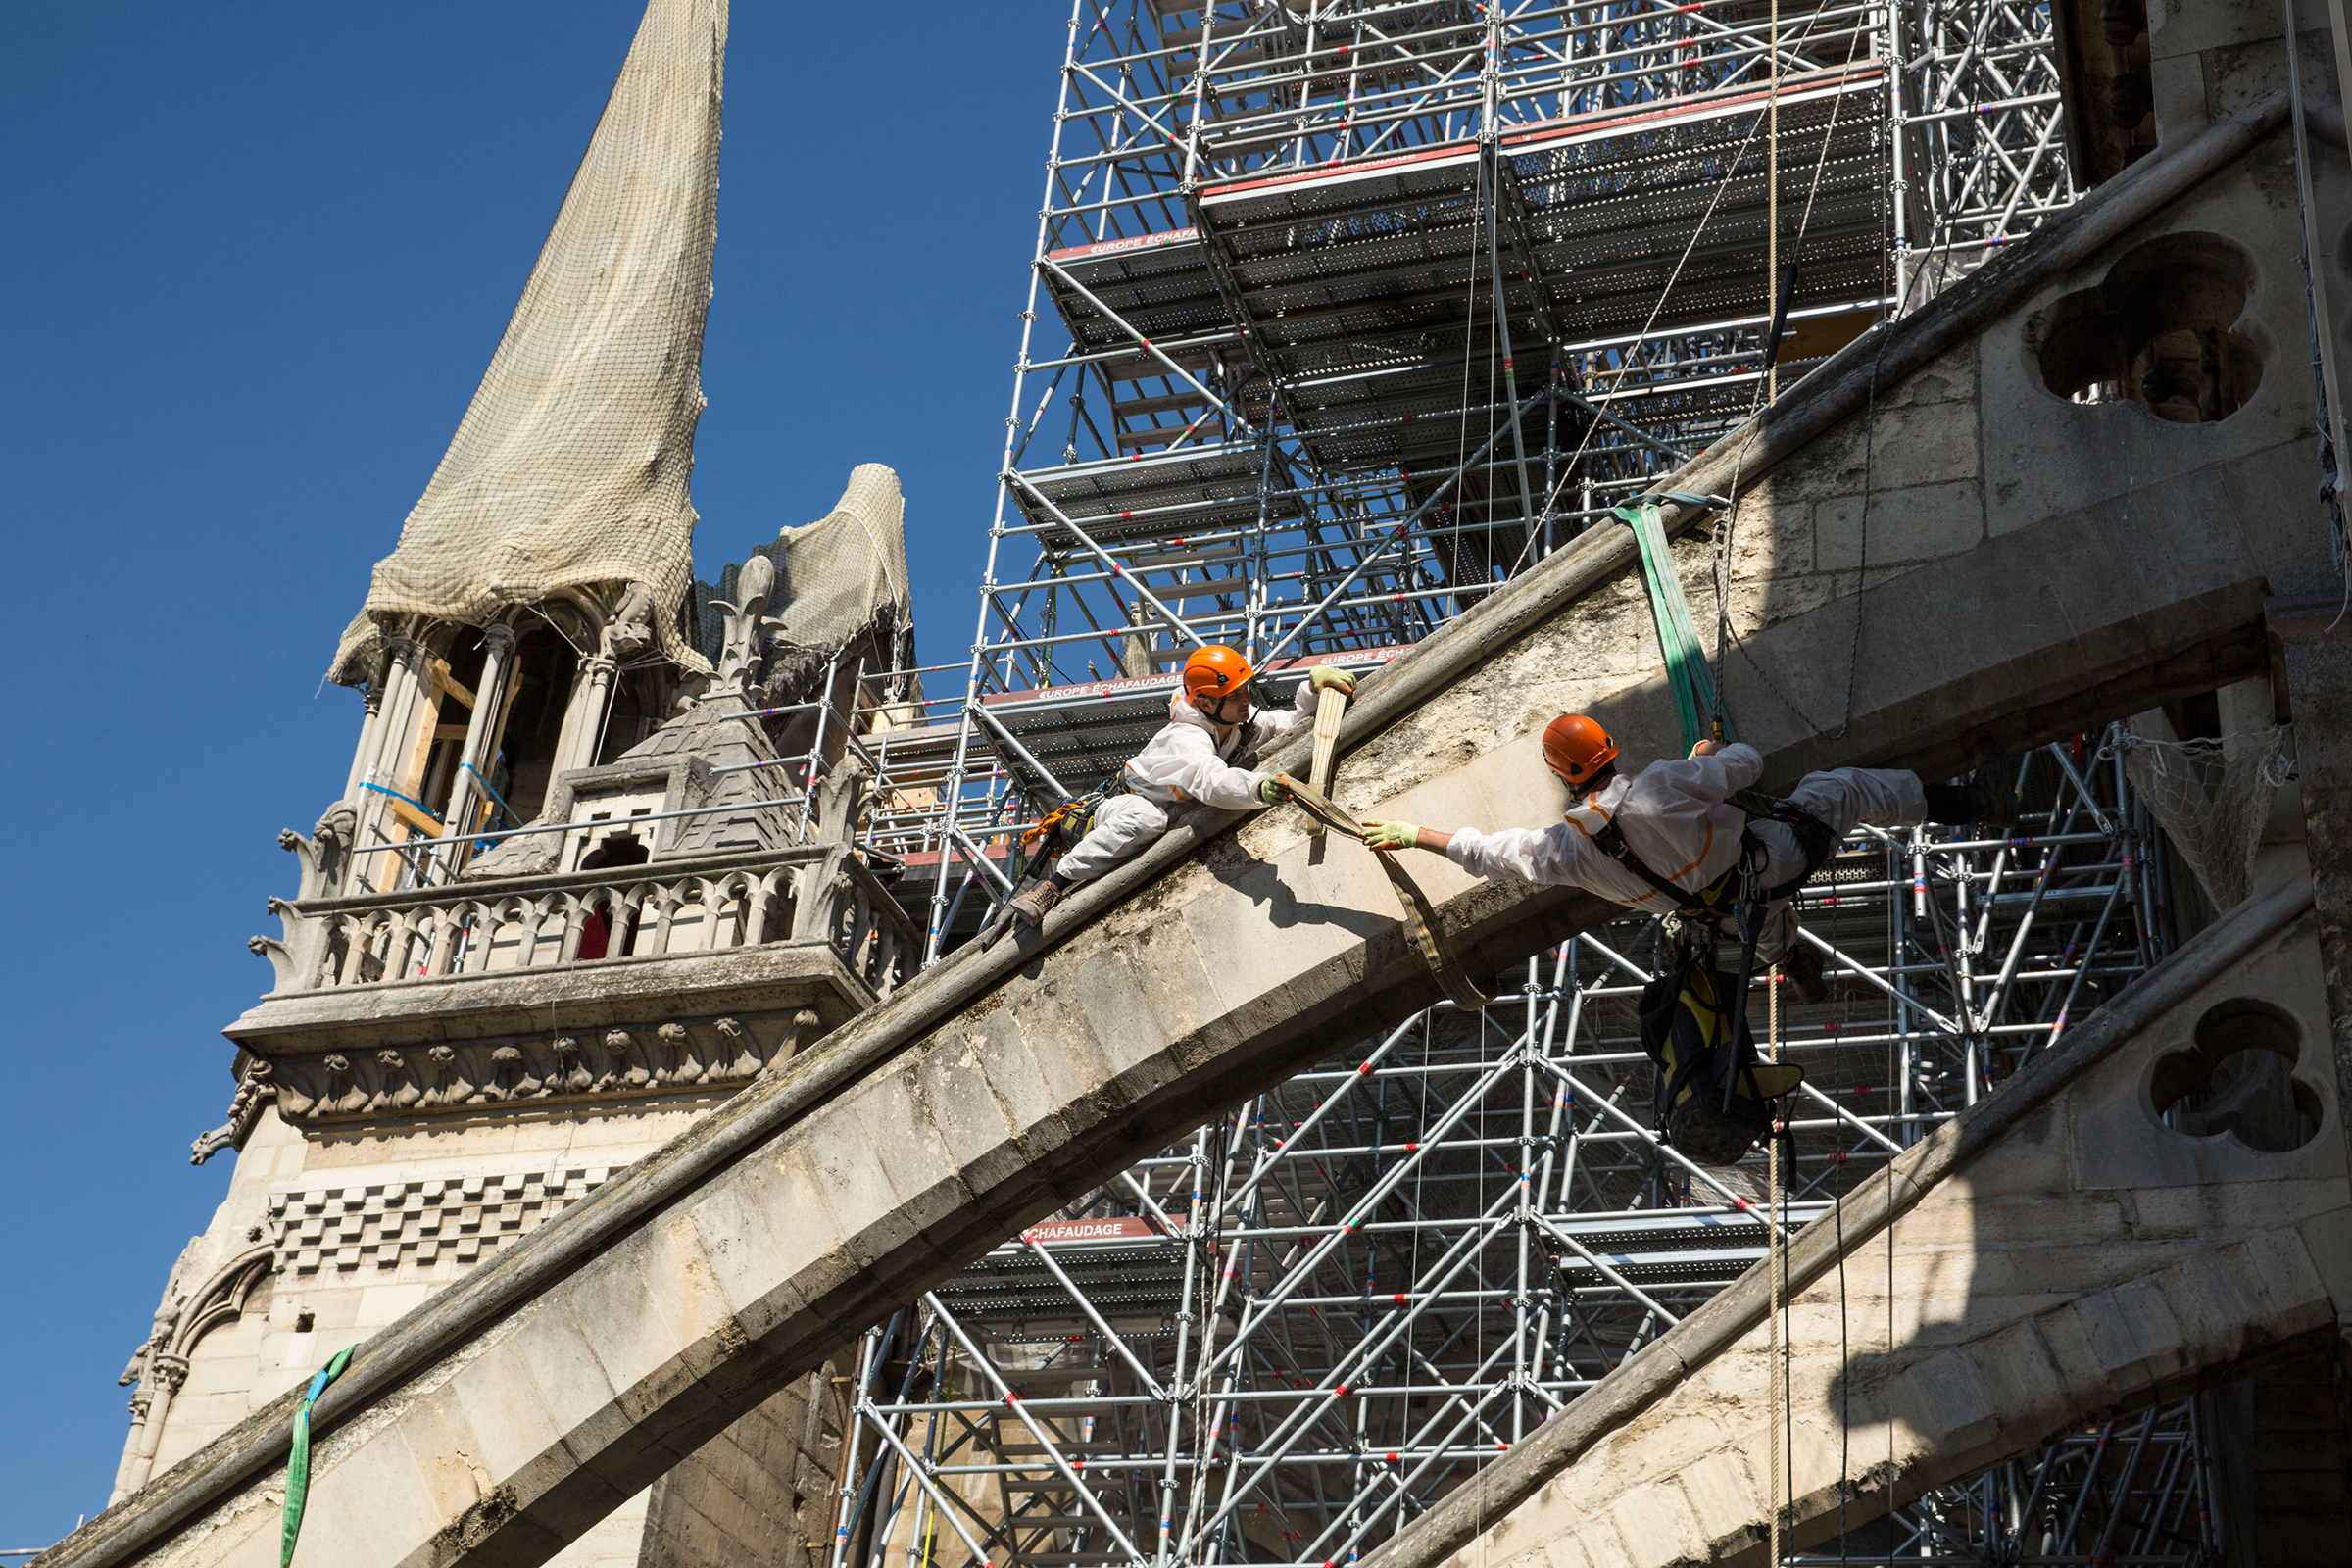 Workers prepare the flying buttresses, where wooden arches will be installed to support the structure.